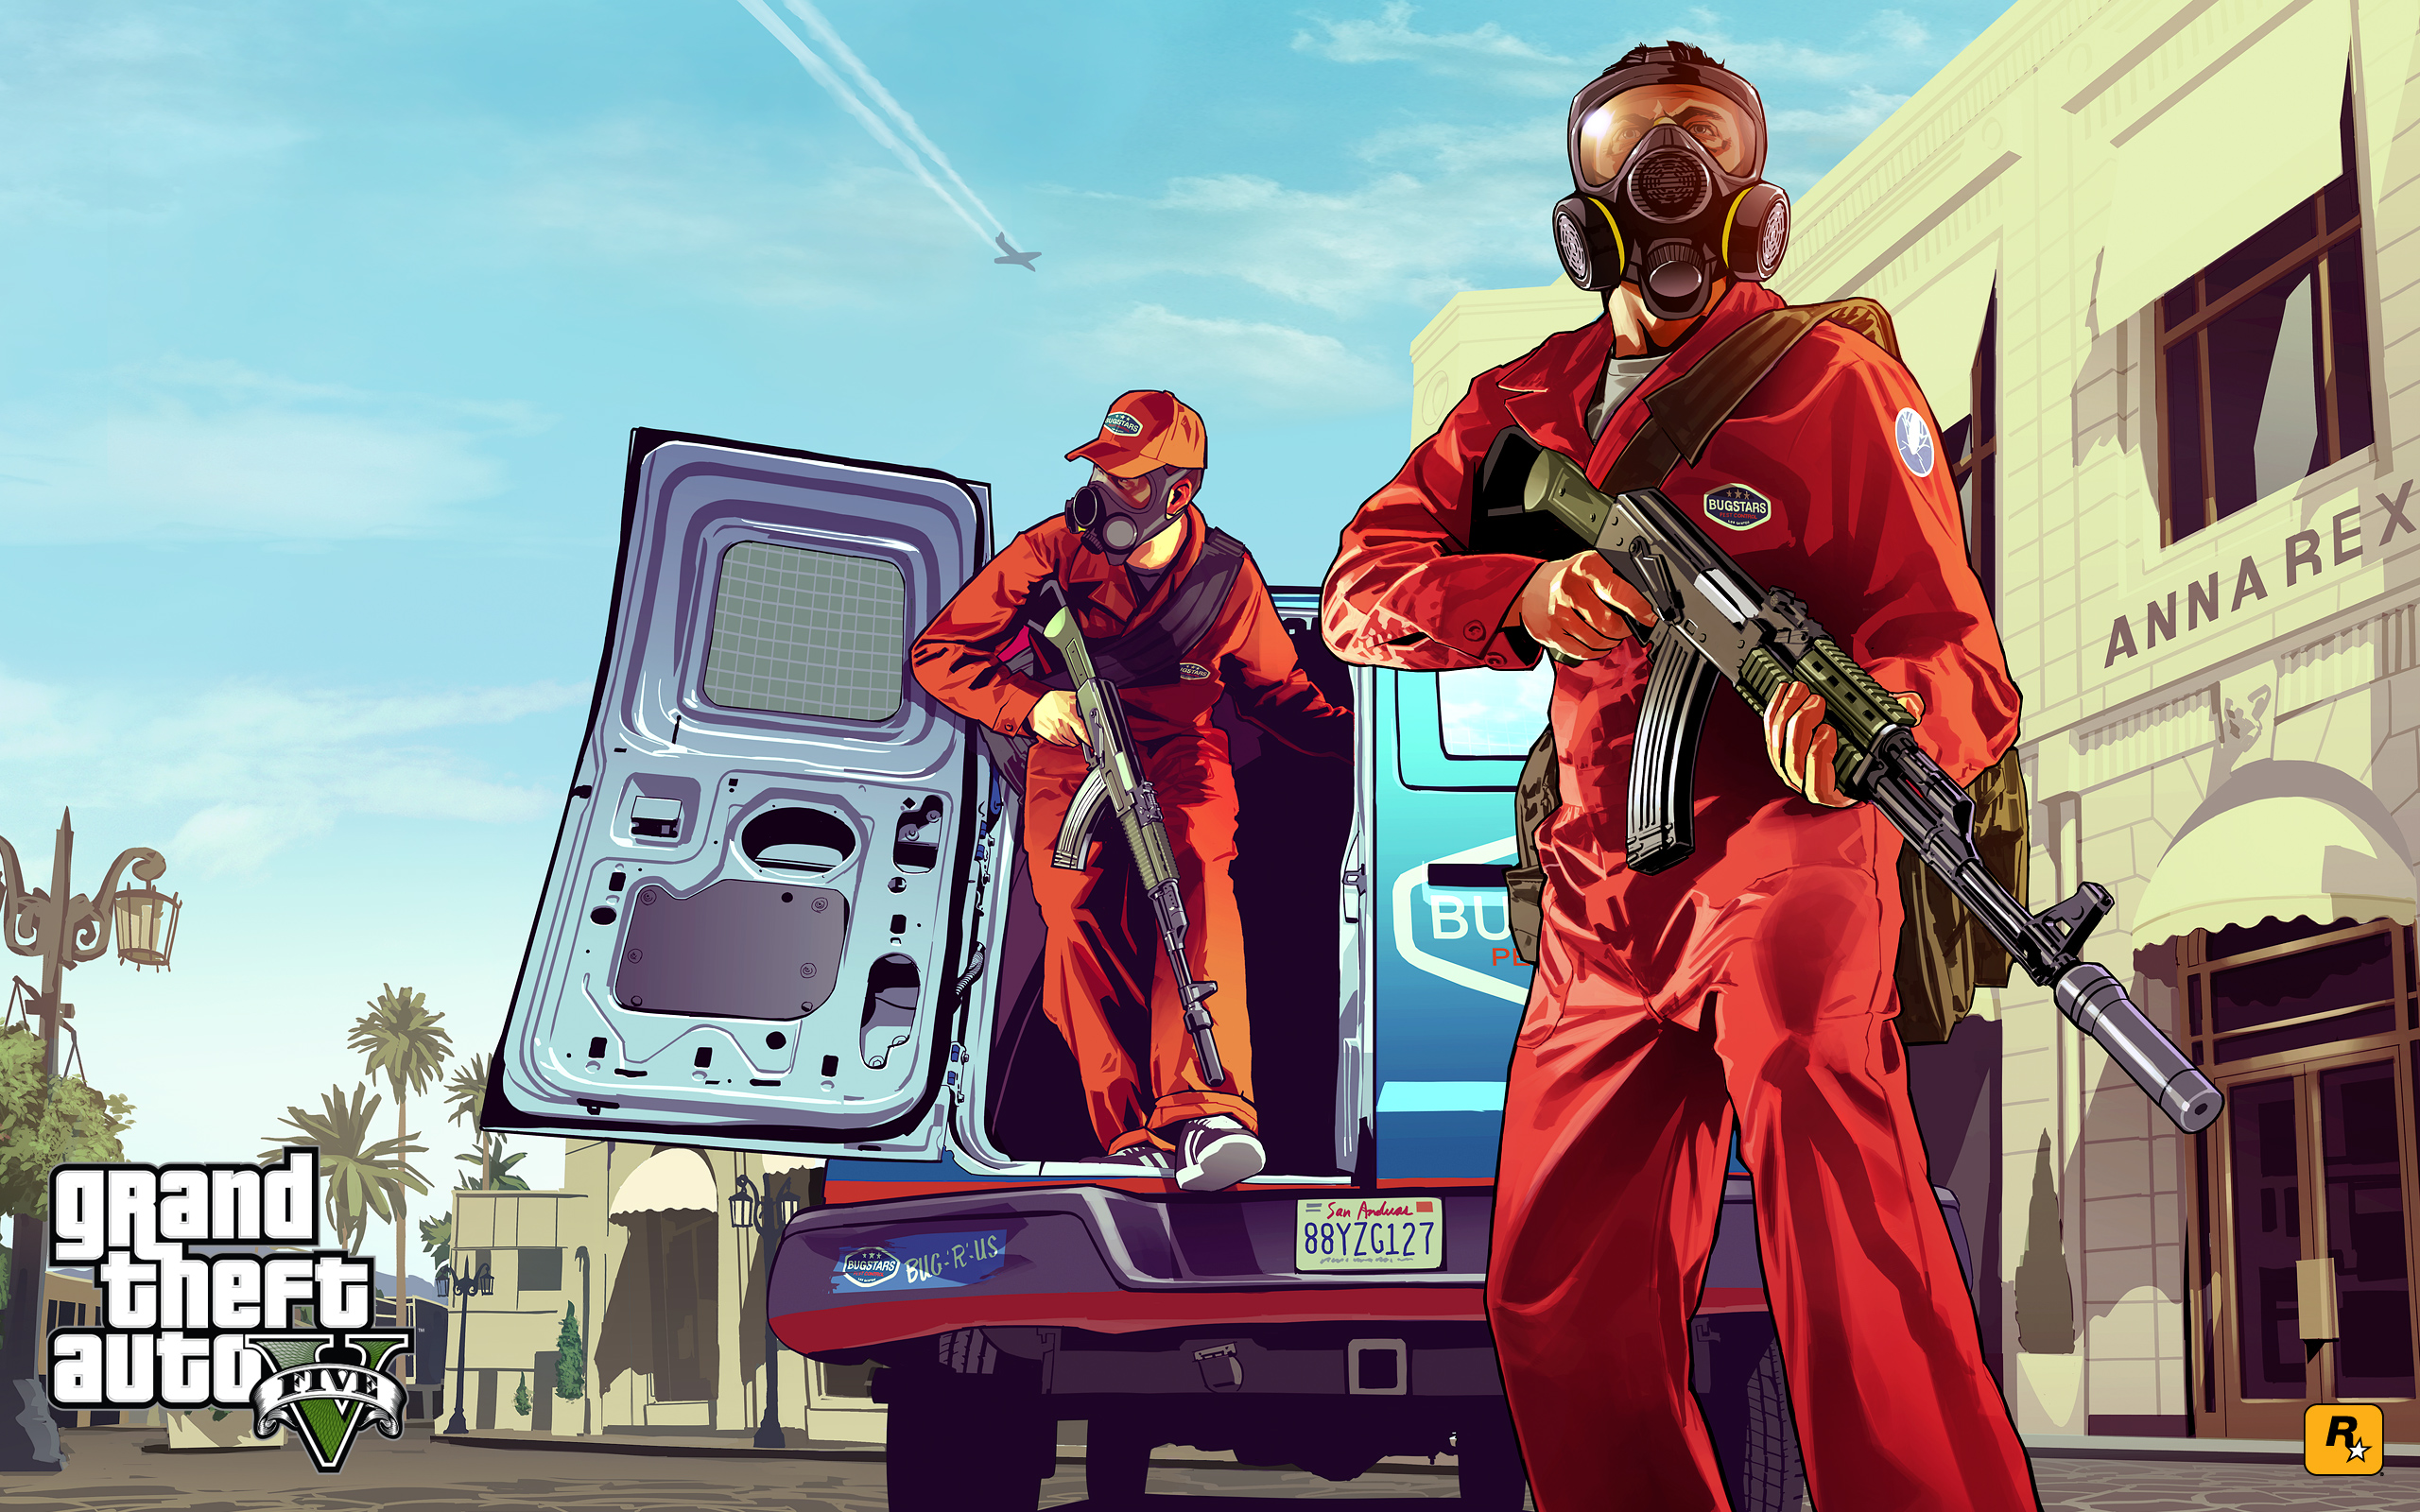 Grand Theft Auto GTA V Wallpapers HD Wallpapers 2560x1600